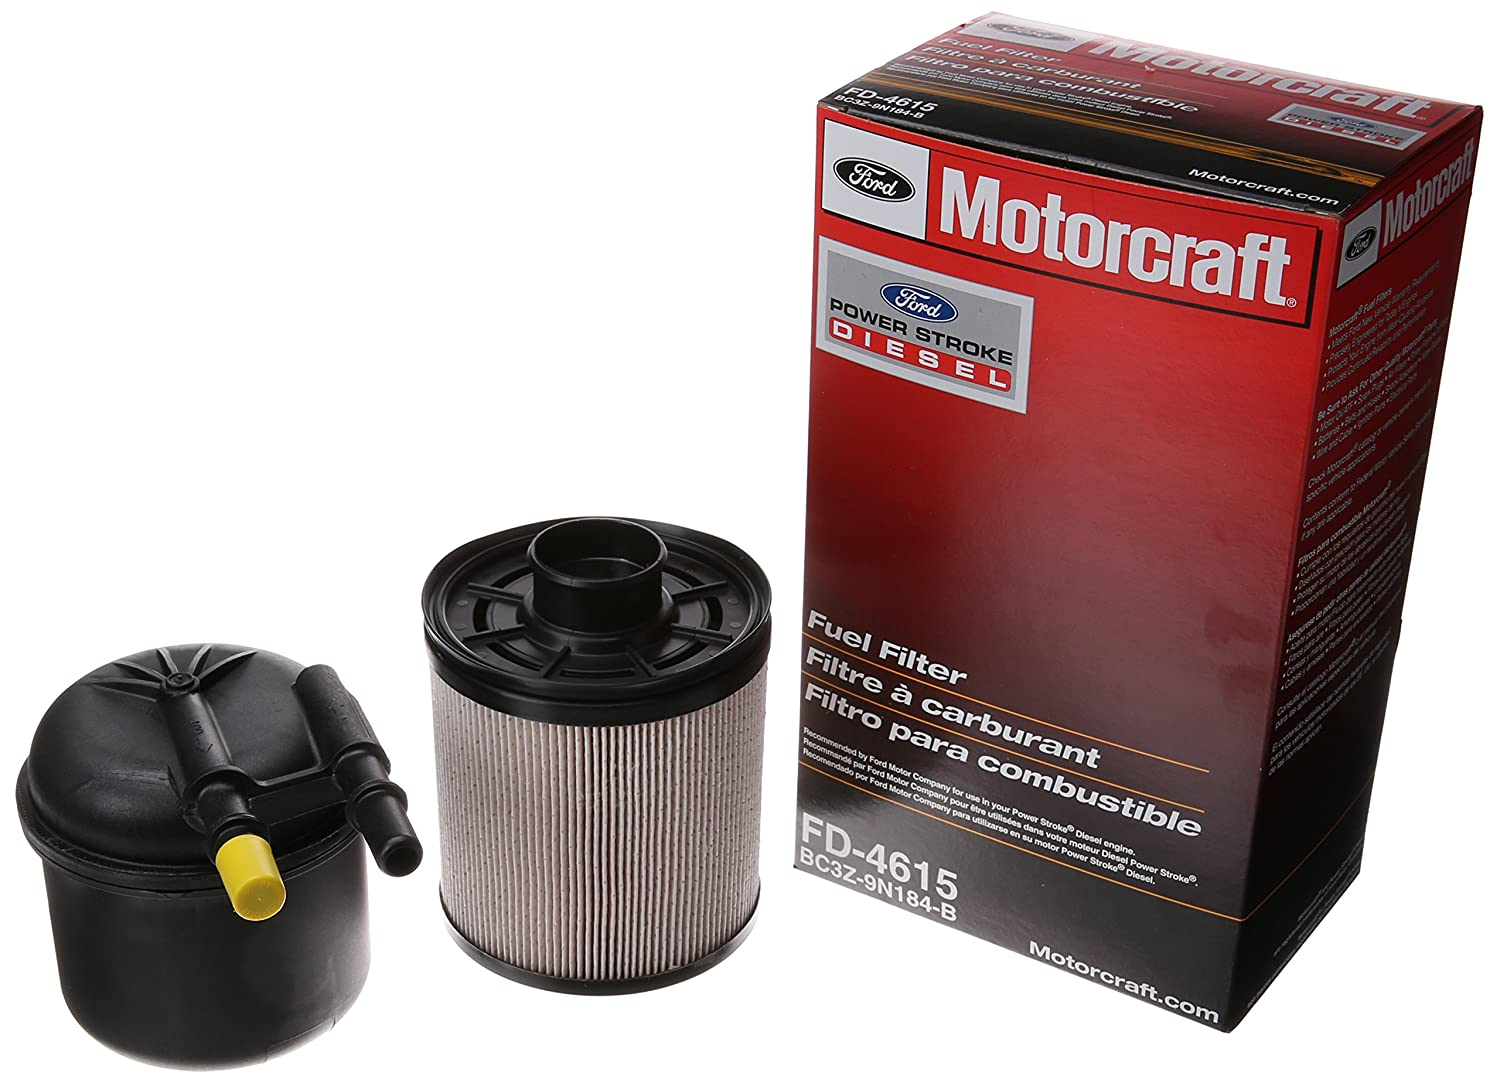 Fuel Filters Replacement Parts Automotive Toyota Pickup Filter Location Motorcraft Fd 4615